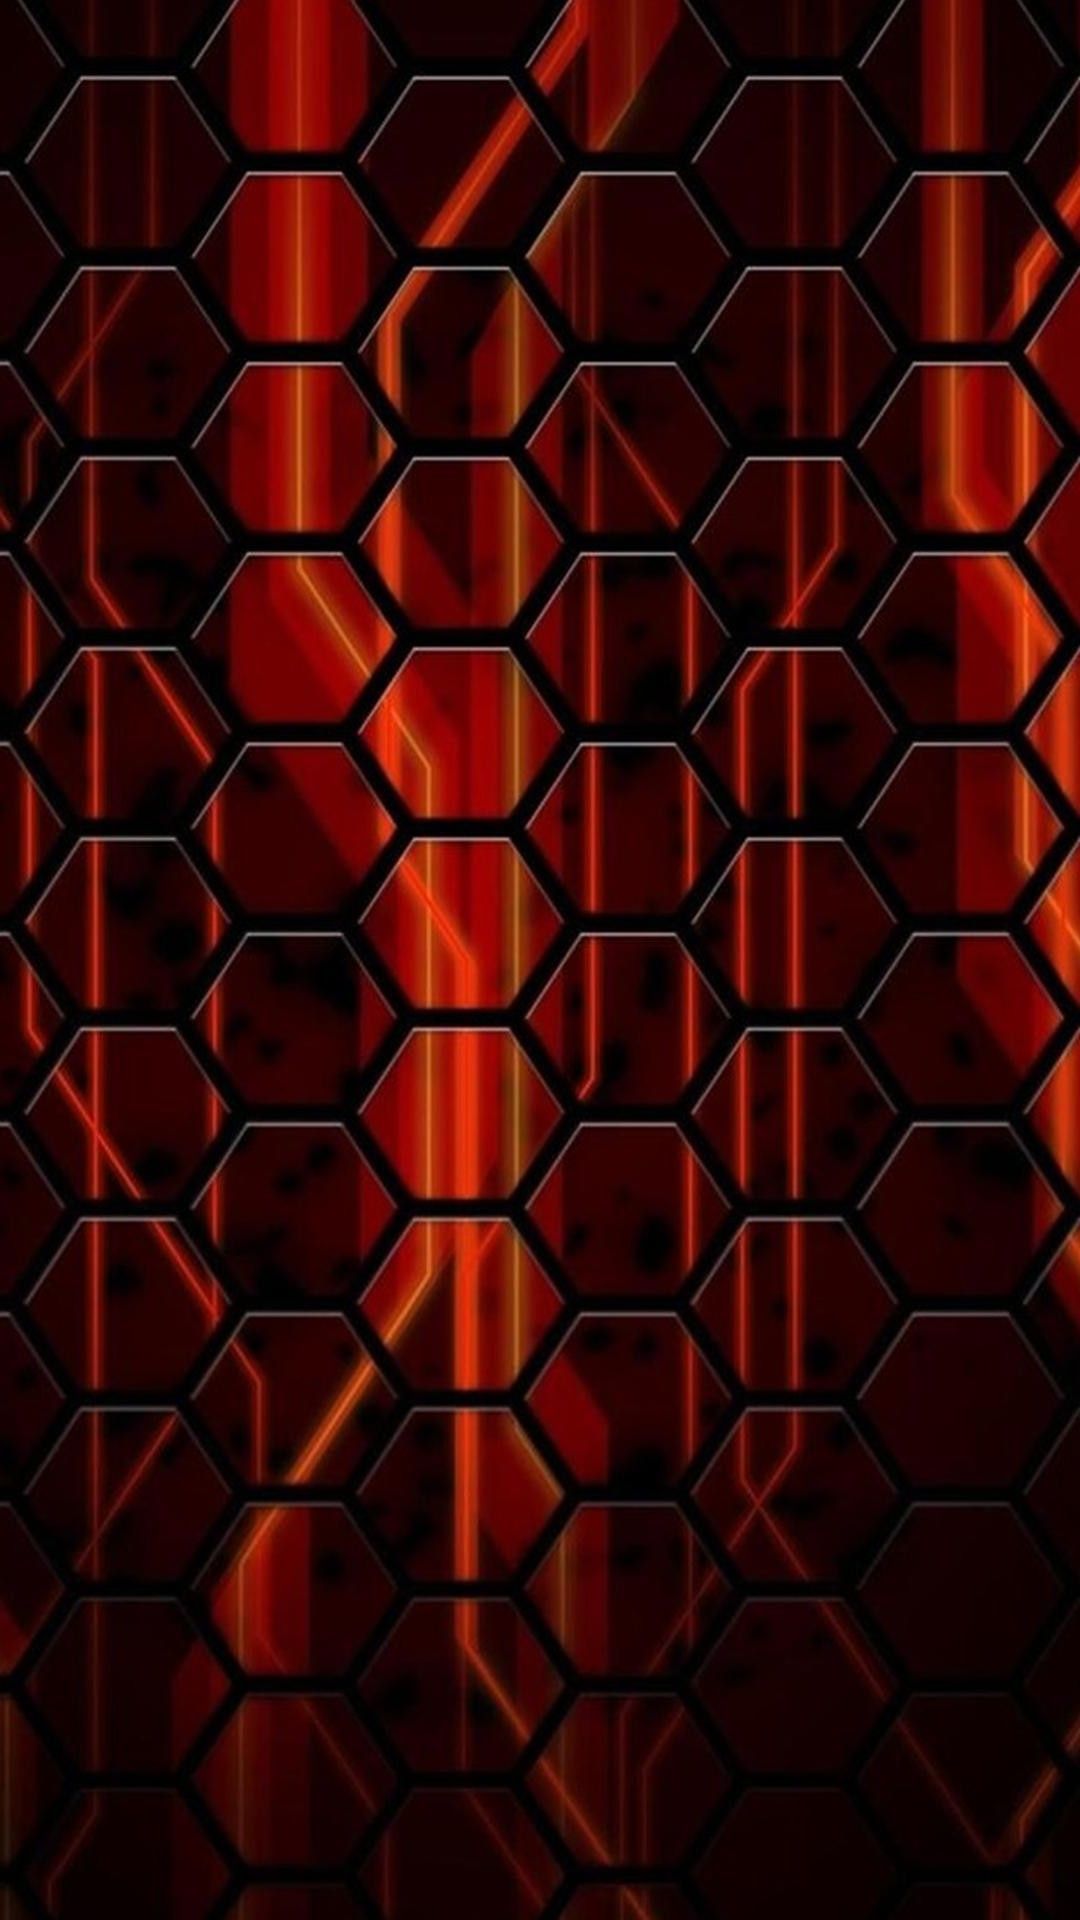 Abstract Android Wallpapers HD 230 | phone wallpapers di 2019 | Iphone 6 wallpaper backgrounds ...